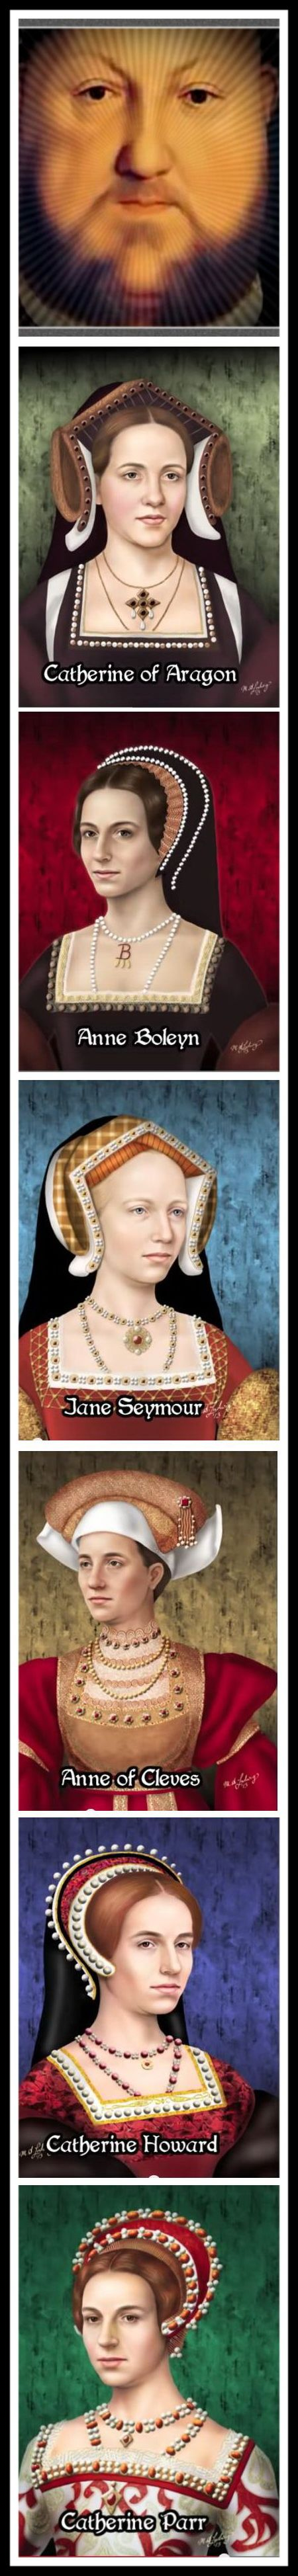 best images about english royalty th th century on 17 best images about english royalty 15th 16th century richard iii mary boleyn and jane seymour